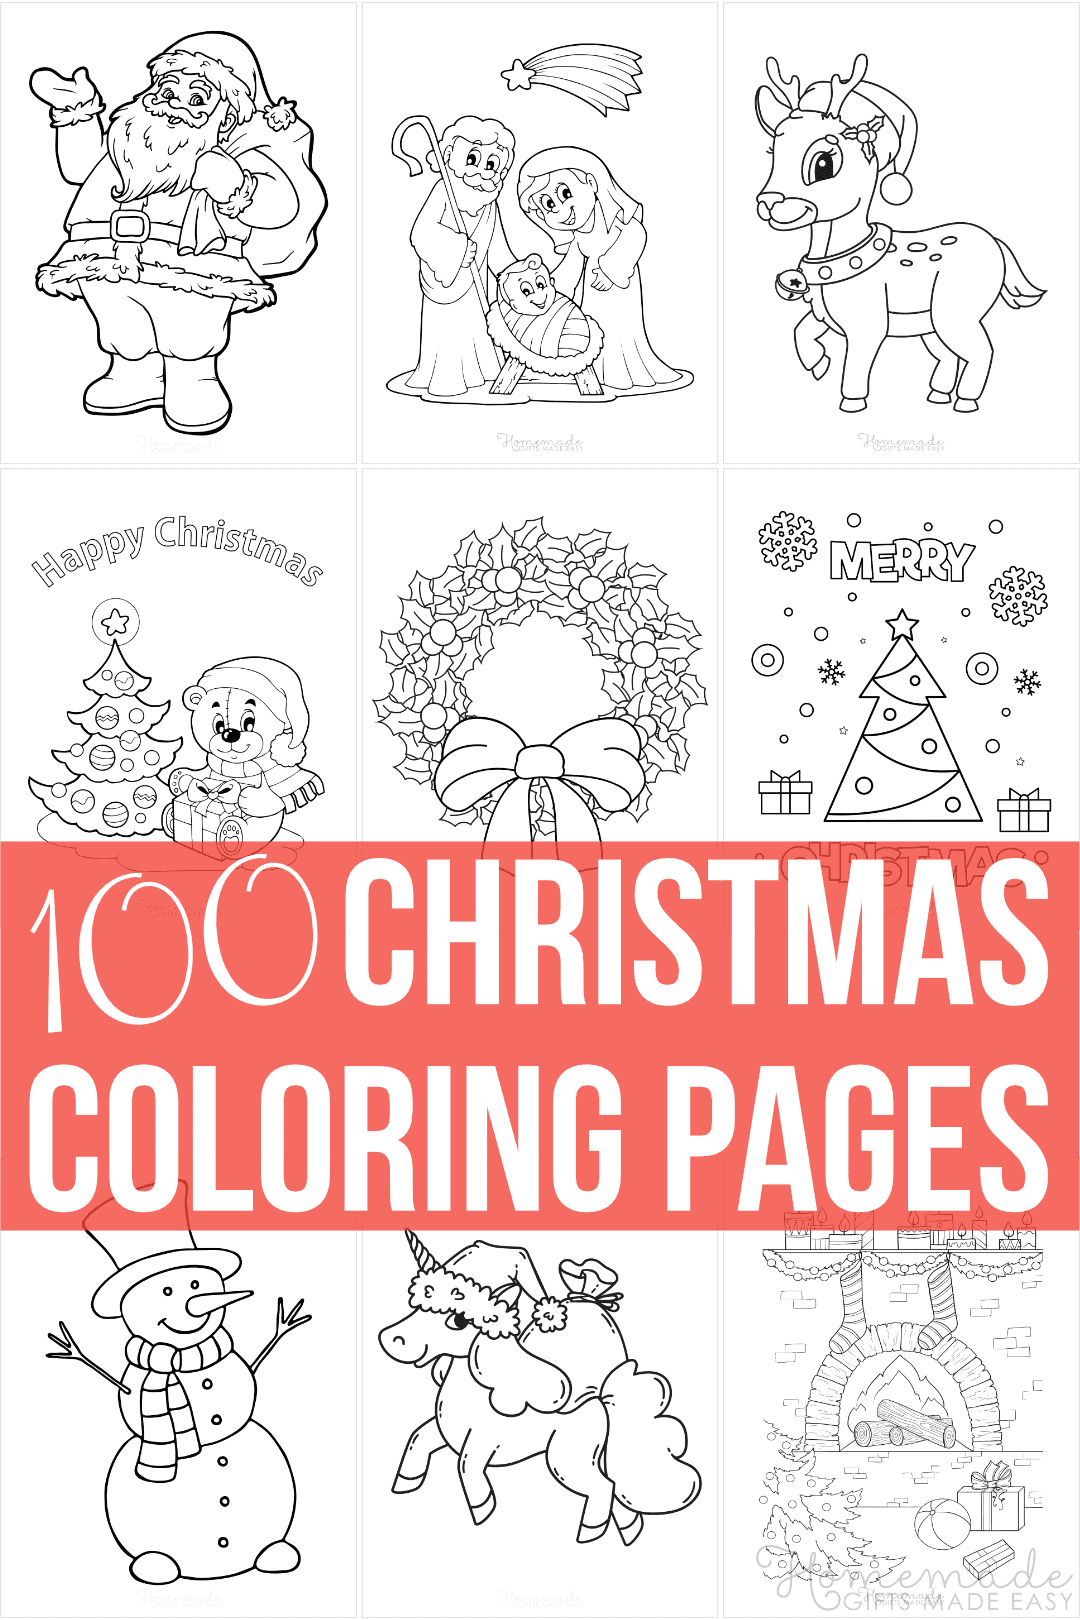 100 Best Christmas Coloring Pages | Free Printable Pdfs